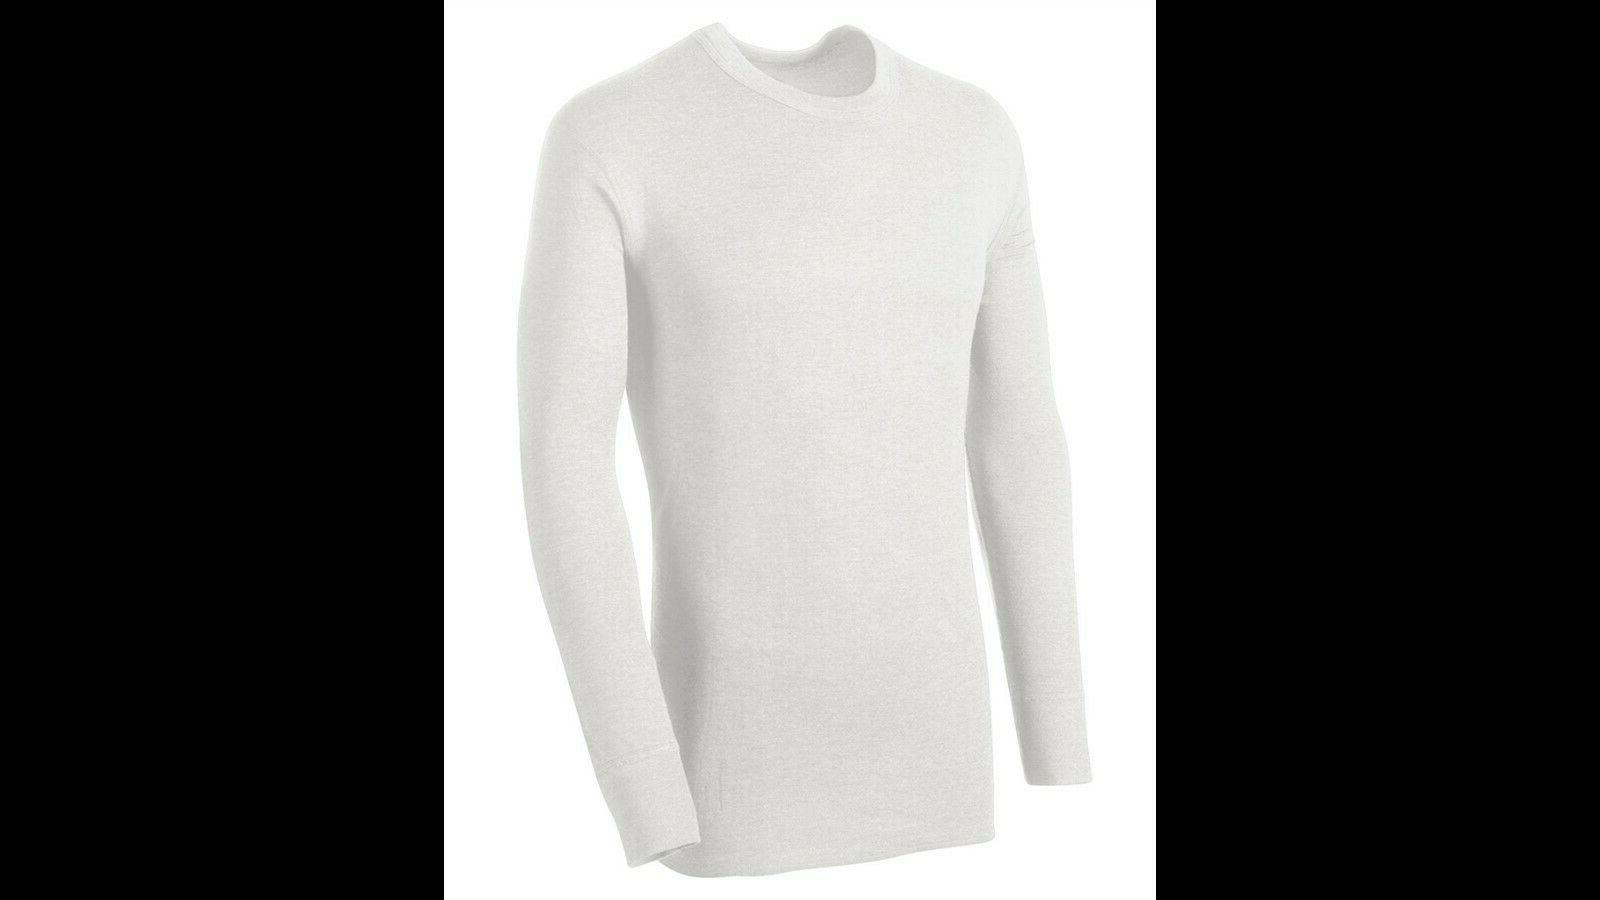 Duofold Champion KMW1 Thermals Shirt